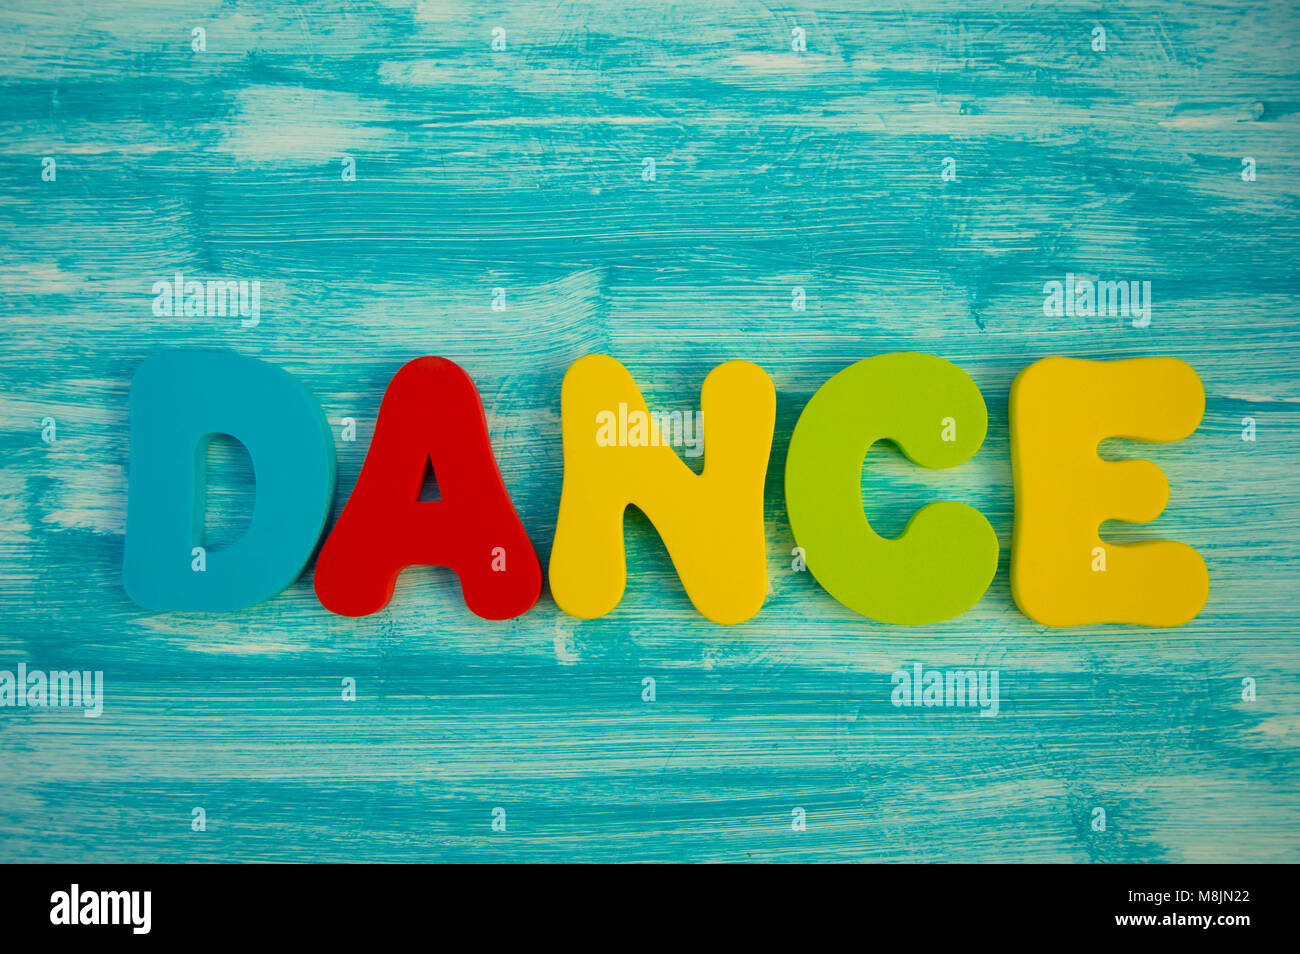 Dance in colourful letters on painted blue wood panel background - Stock Image